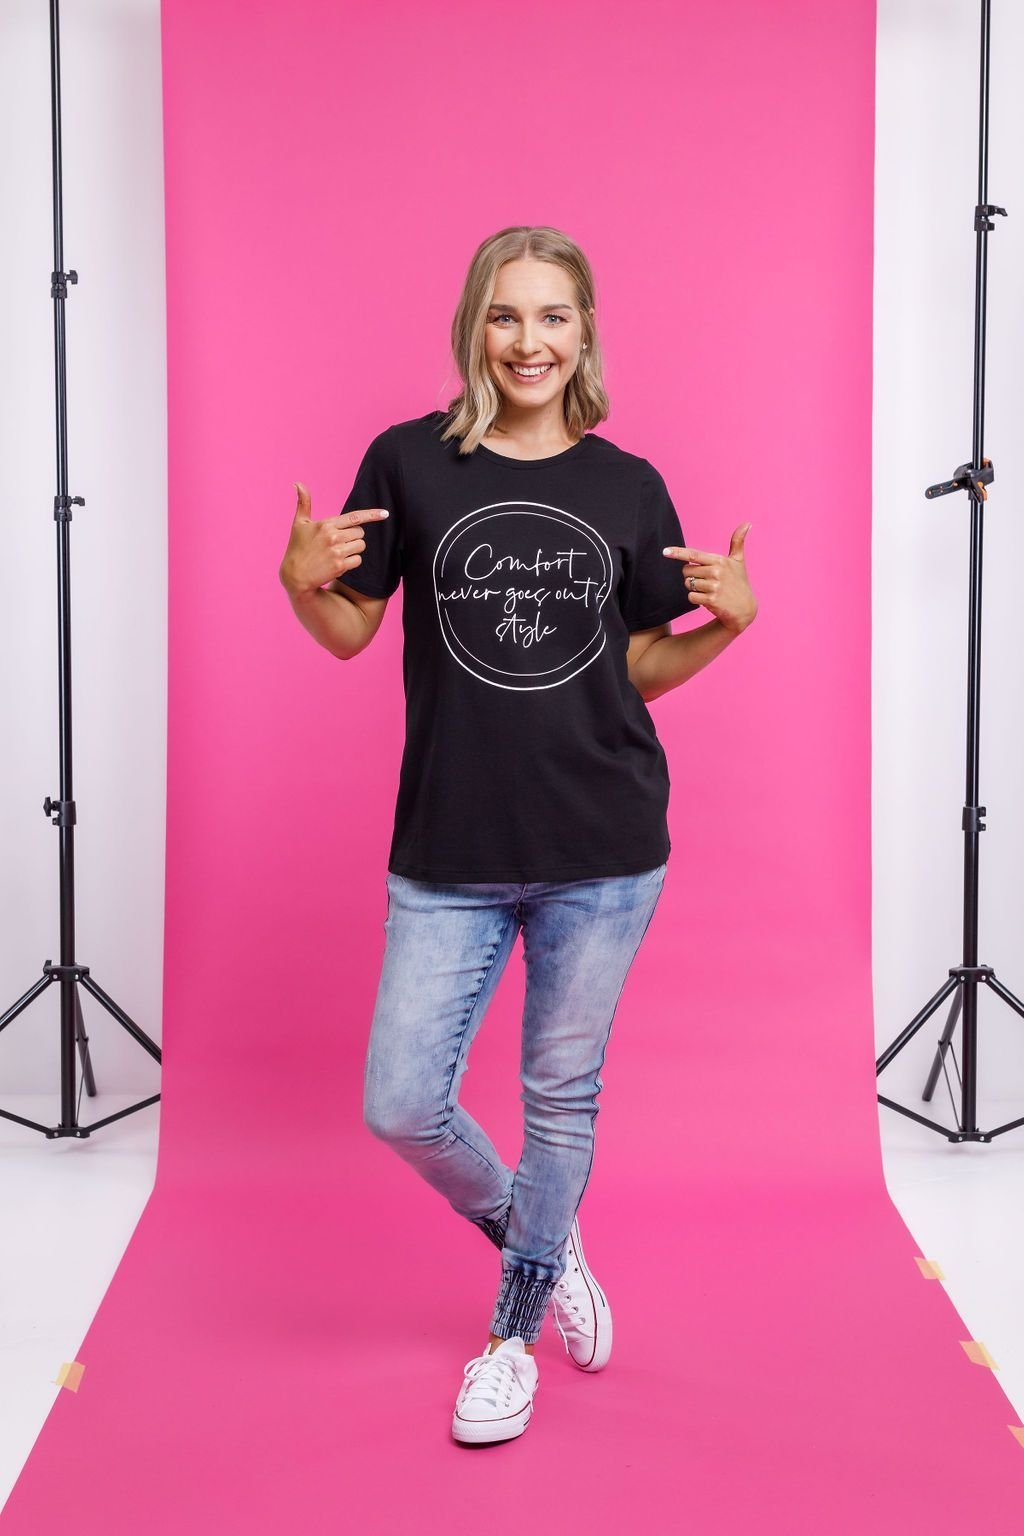 TAYLOR TEE BLACK - Home Lee Taylor Tee - Ebony Boutique NZ